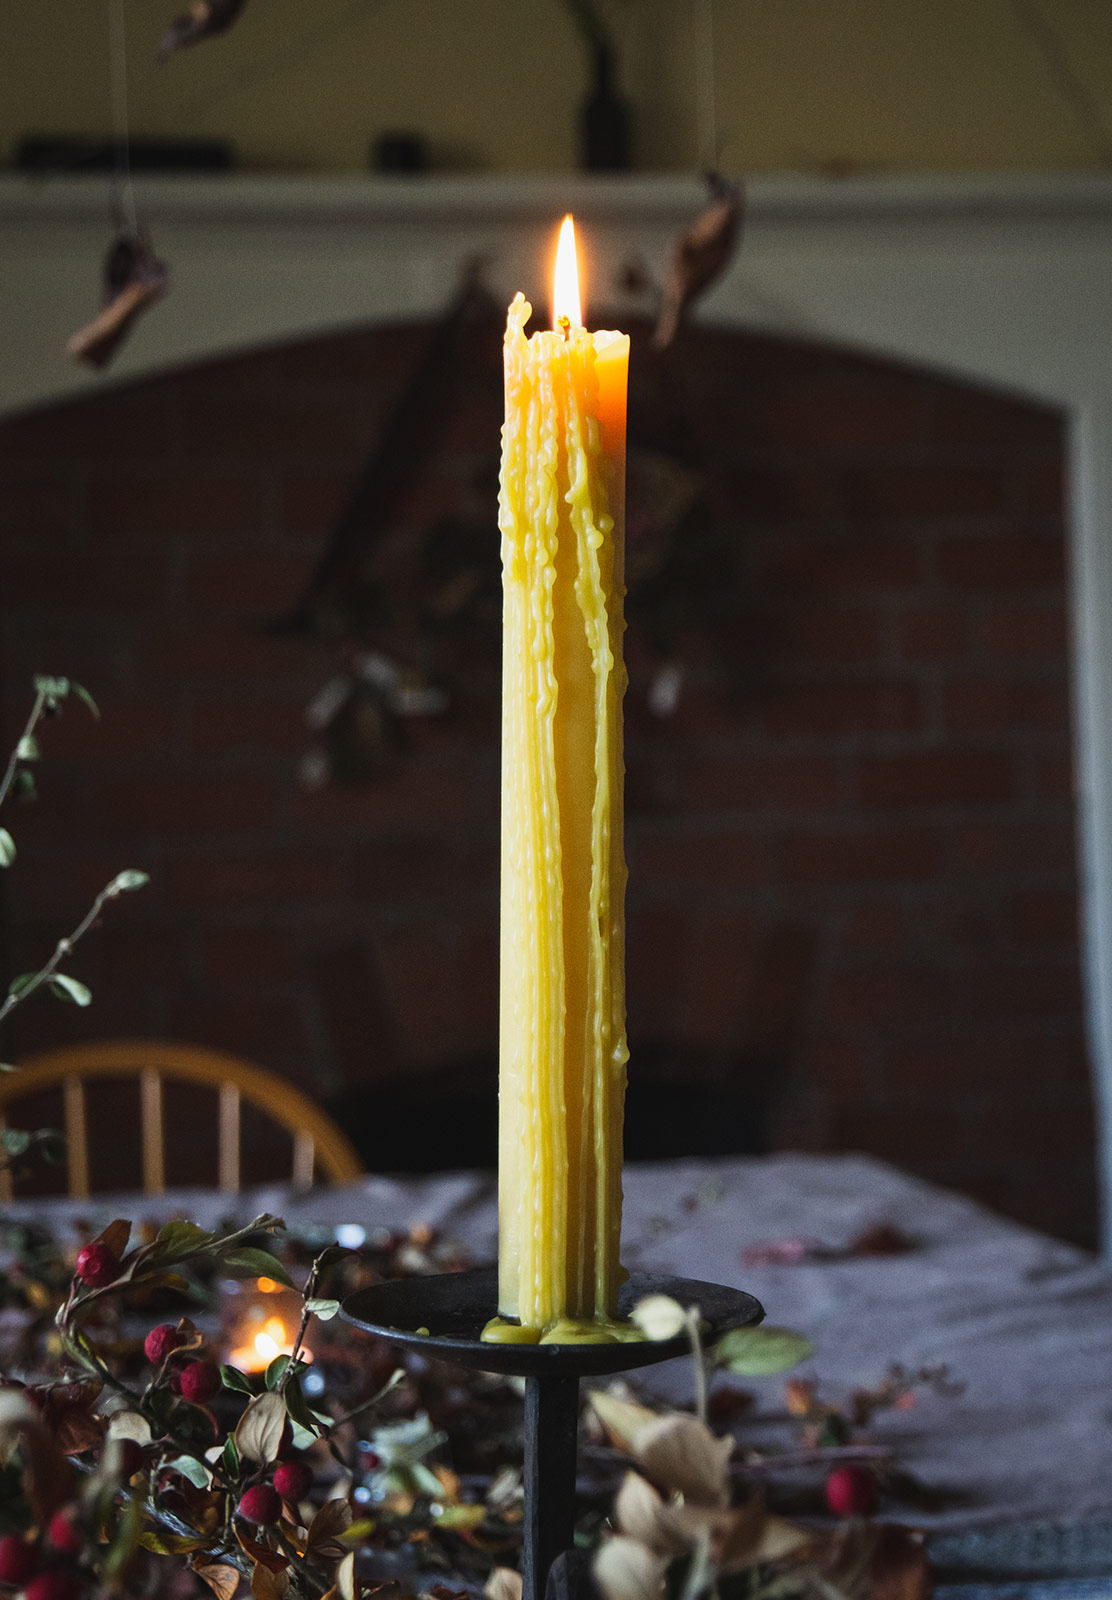 Dripping beeswax candle